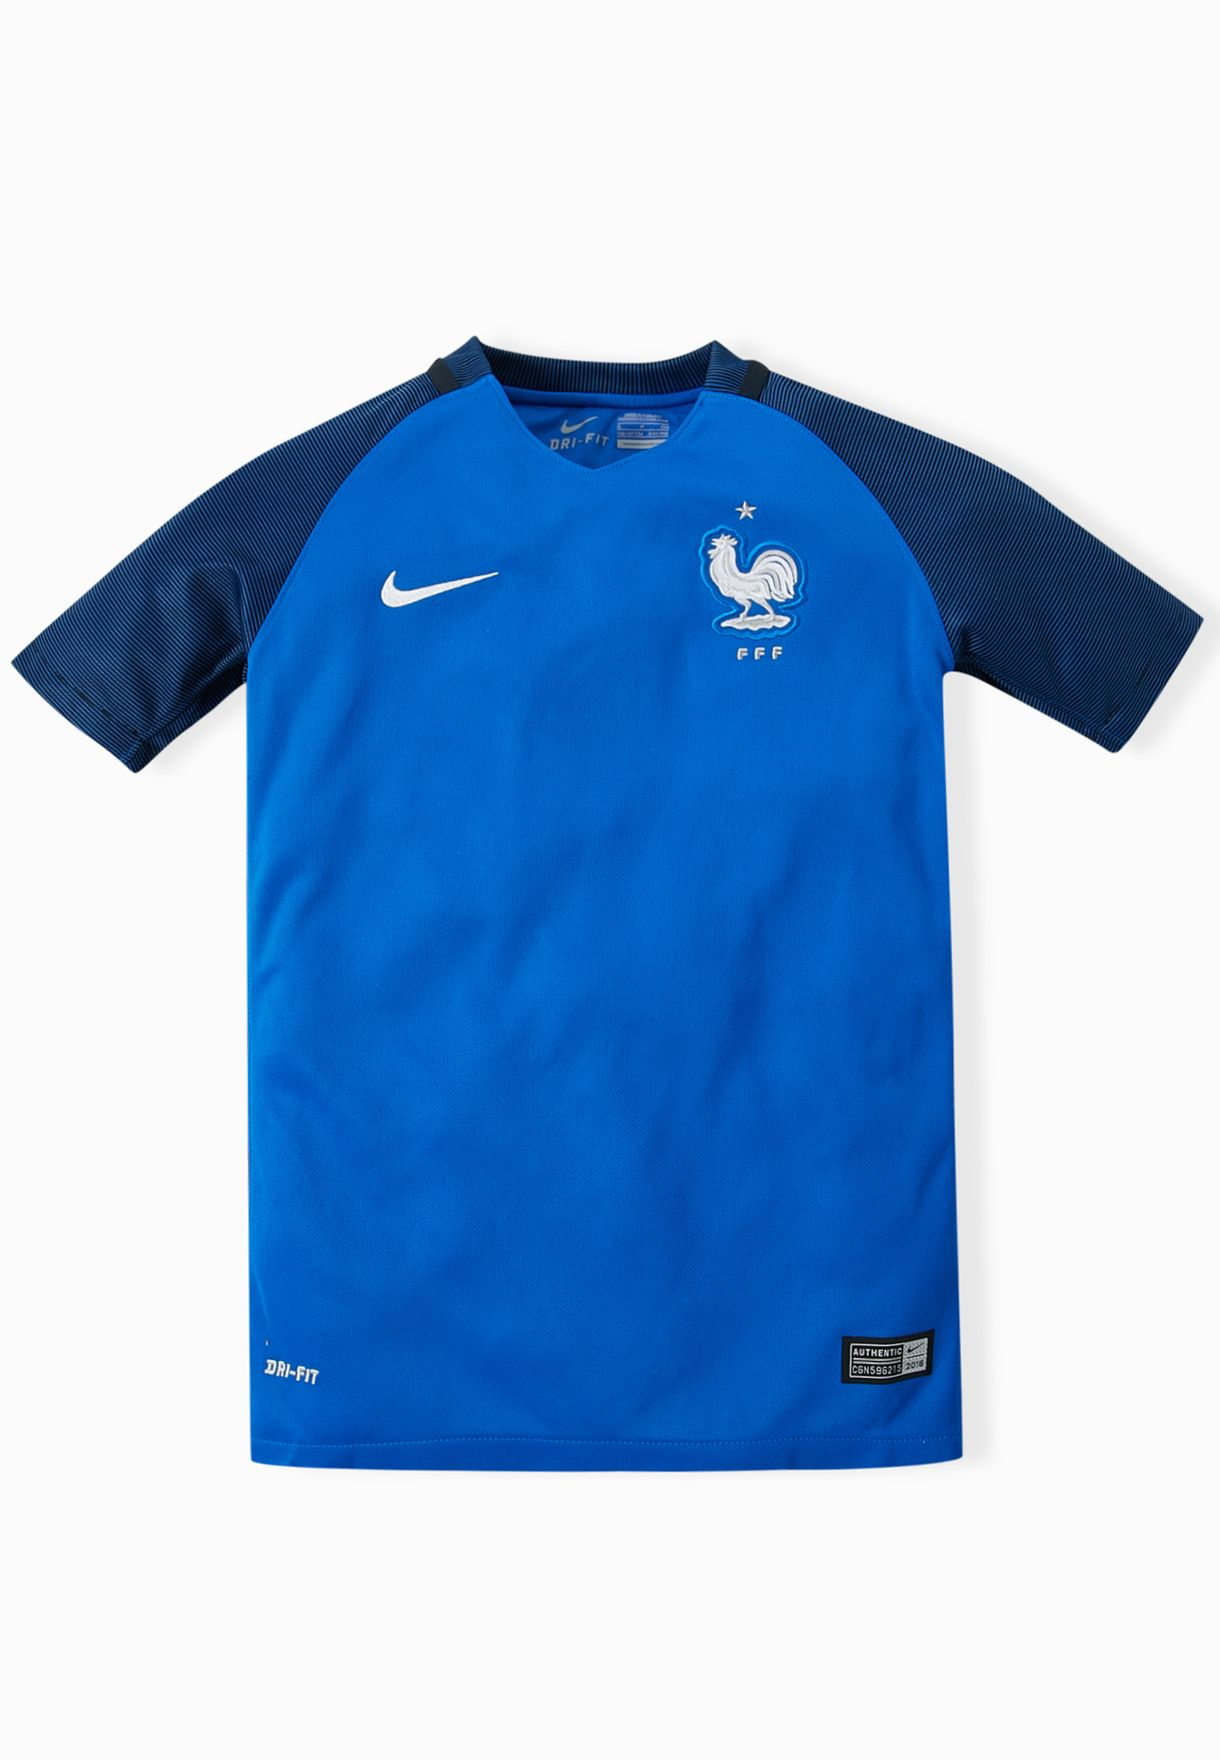 6460faa5214 Shop Nike blue Youth France Stadium Home Jersey 724698-439 for Kids ...